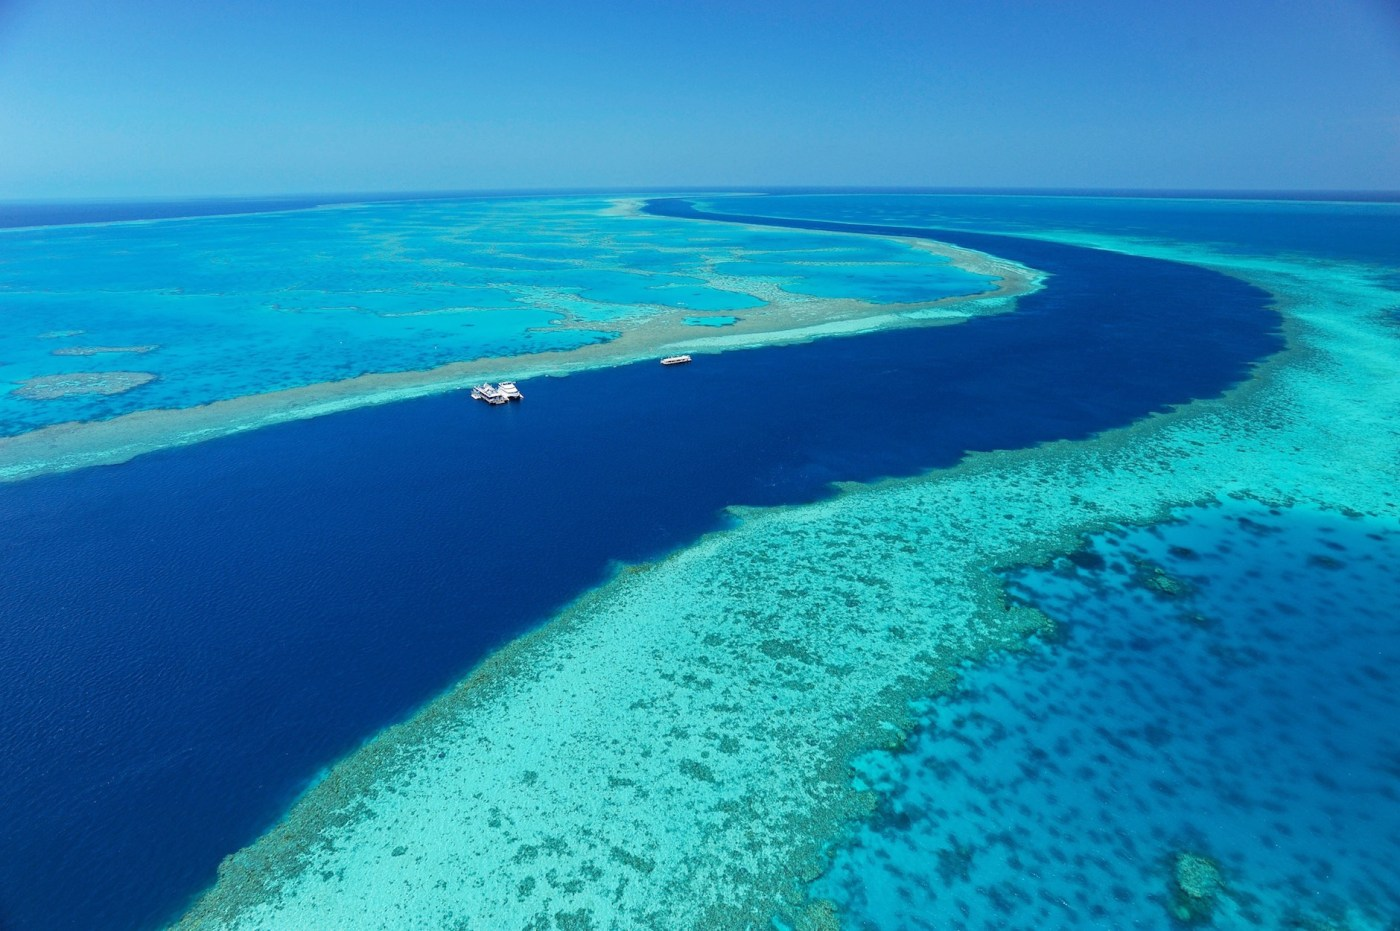 A supplied image obtained Tuesday, Sept. 22, 2015 of Australia's Great Barrier Reef as seen from above. (AAP Image/Hamilton Island) NO ARCHIVING, EDITORIAL USE ONLY